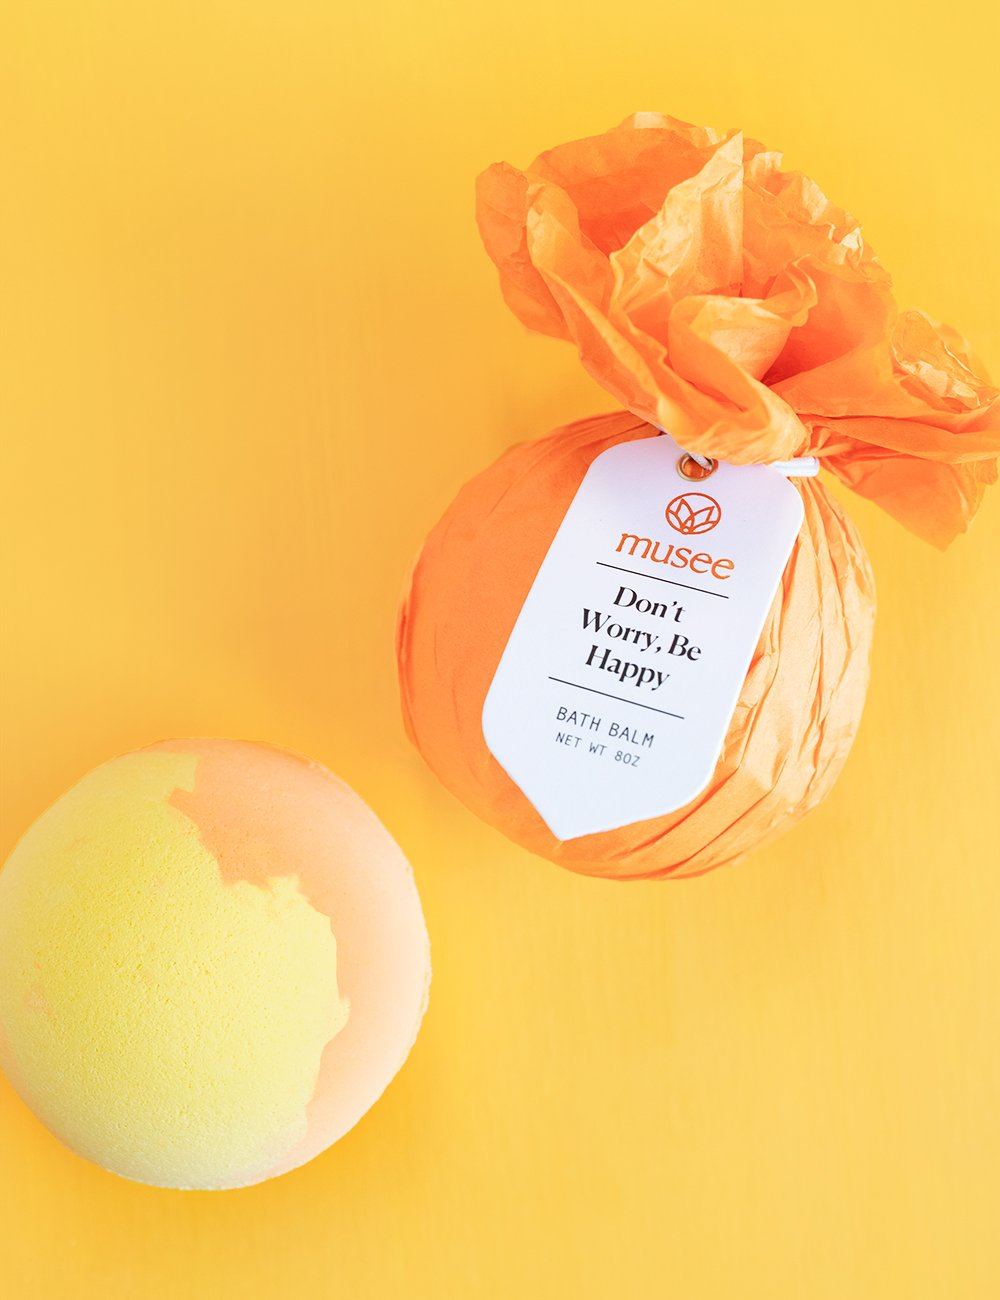 Bath Balm | Don't Worry Be Happy! - The Yellow Canary